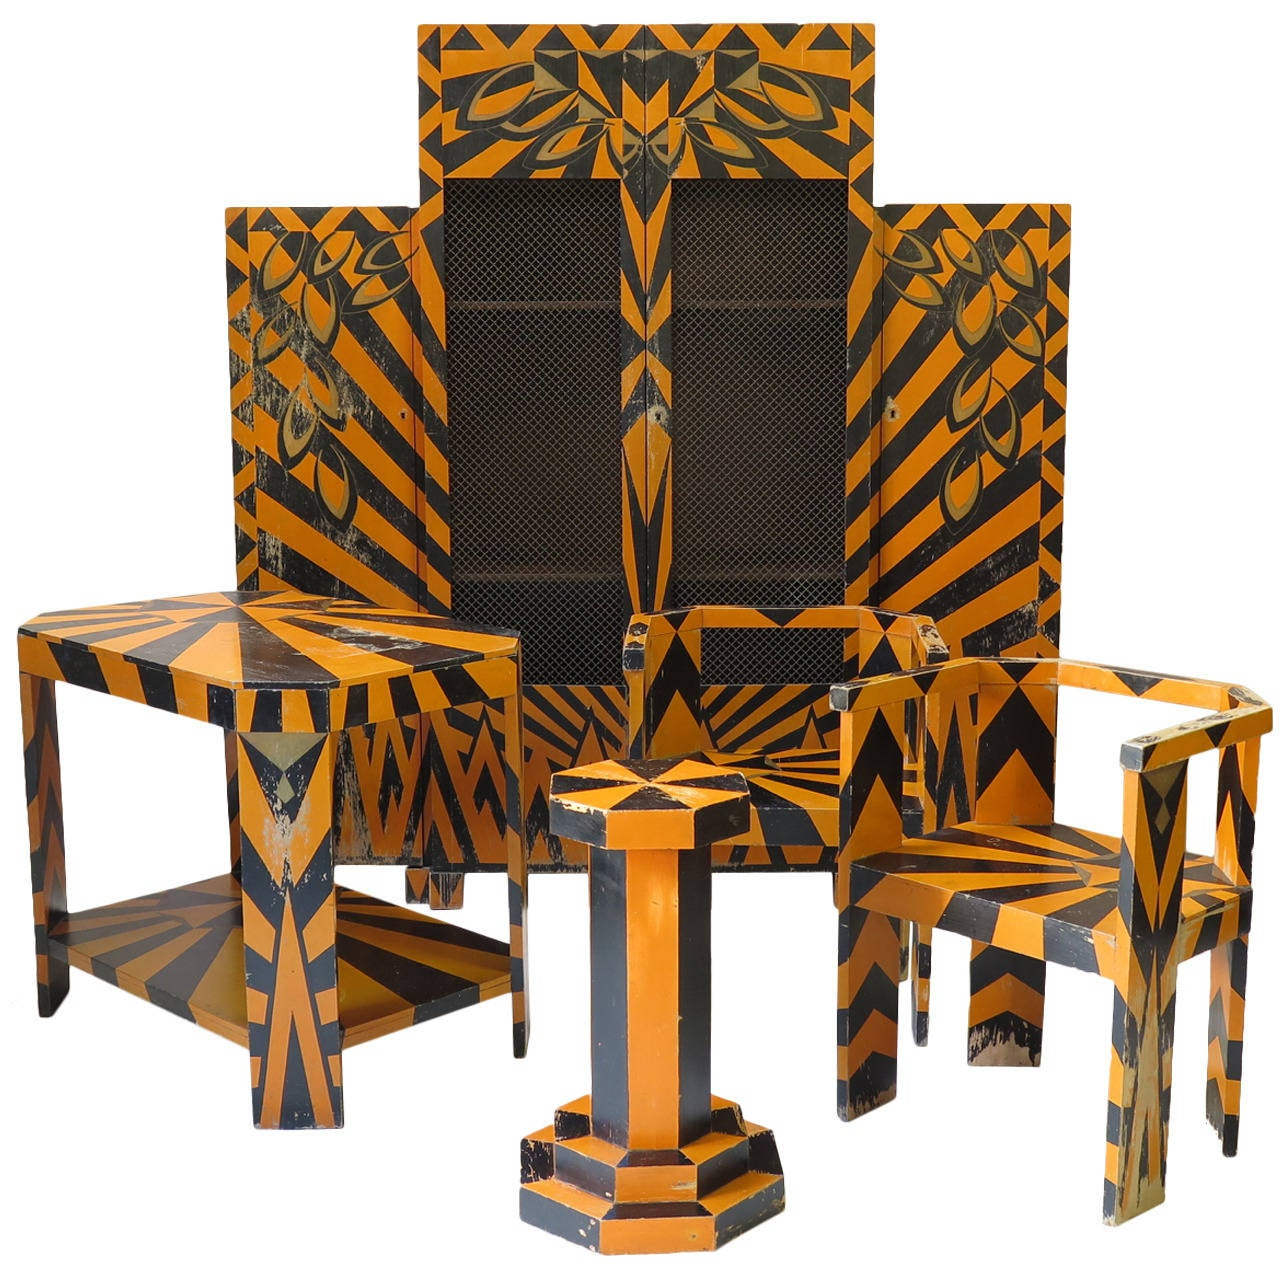 striking cubist art deco set france 1930s at 1stdibs. Black Bedroom Furniture Sets. Home Design Ideas